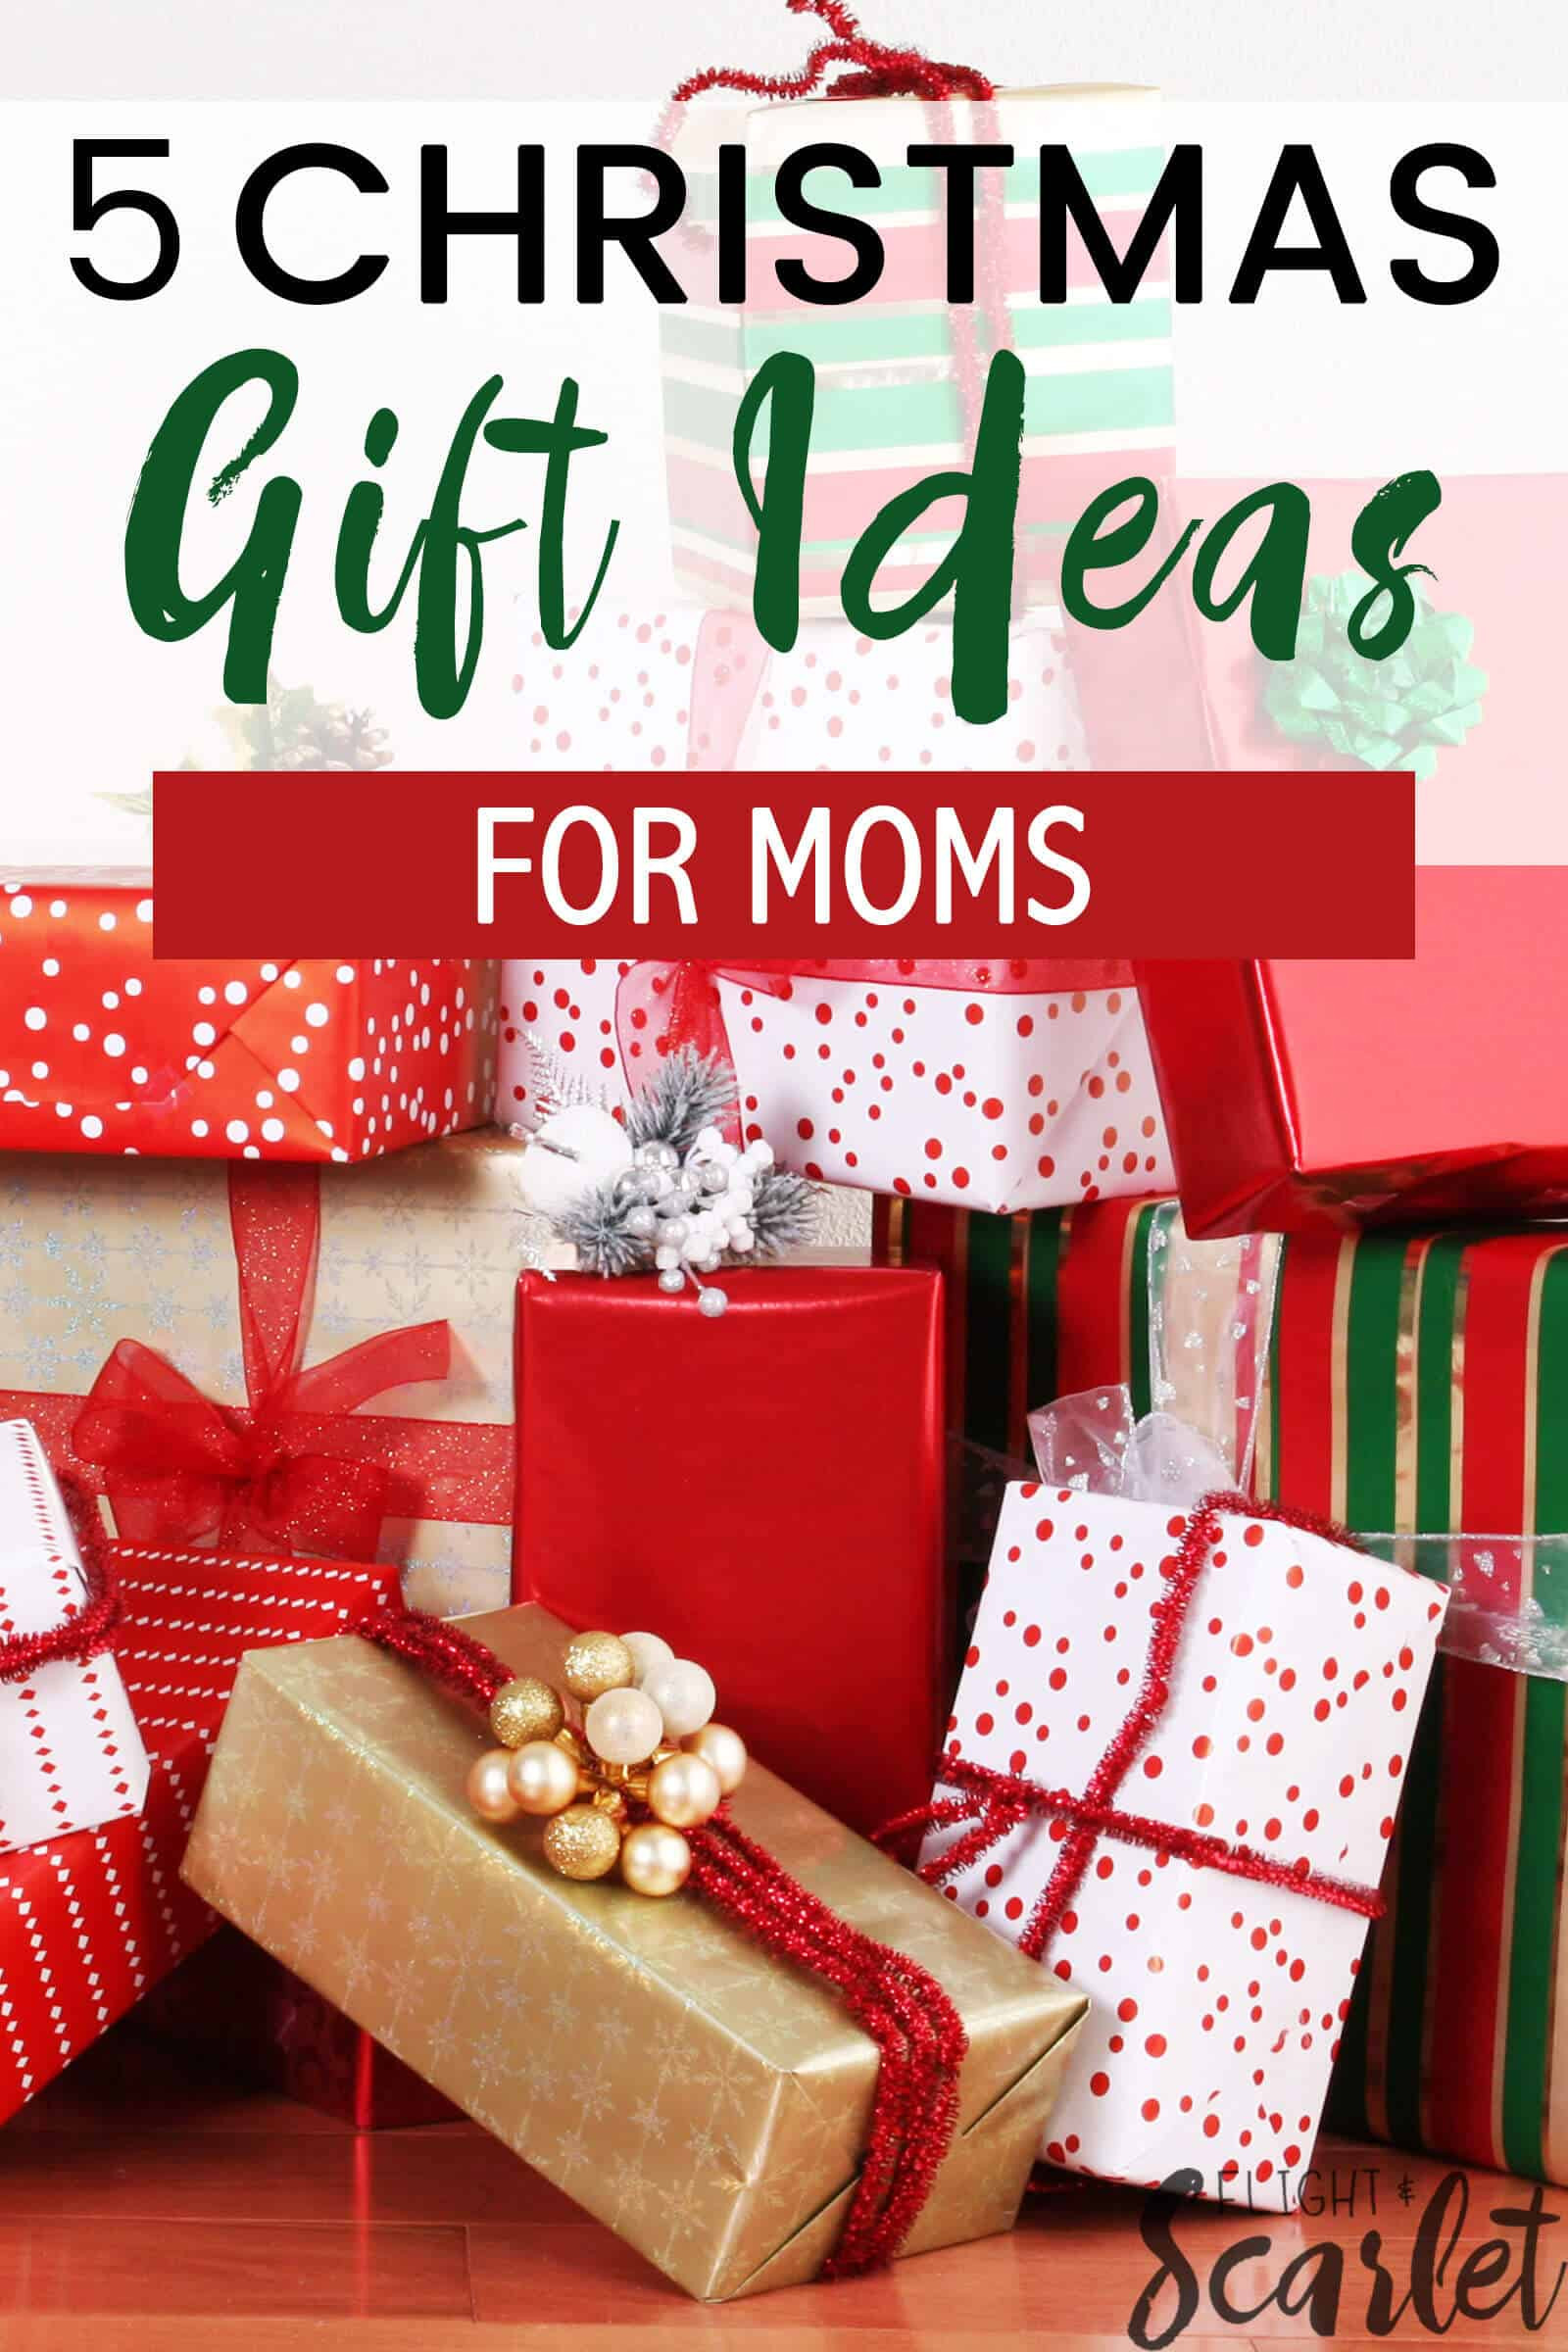 Best ideas about Christmas Gift Ideas For New Moms . Save or Pin 5 Bud Friendly Gift Ideas For Moms Flight & Scarlet Now.